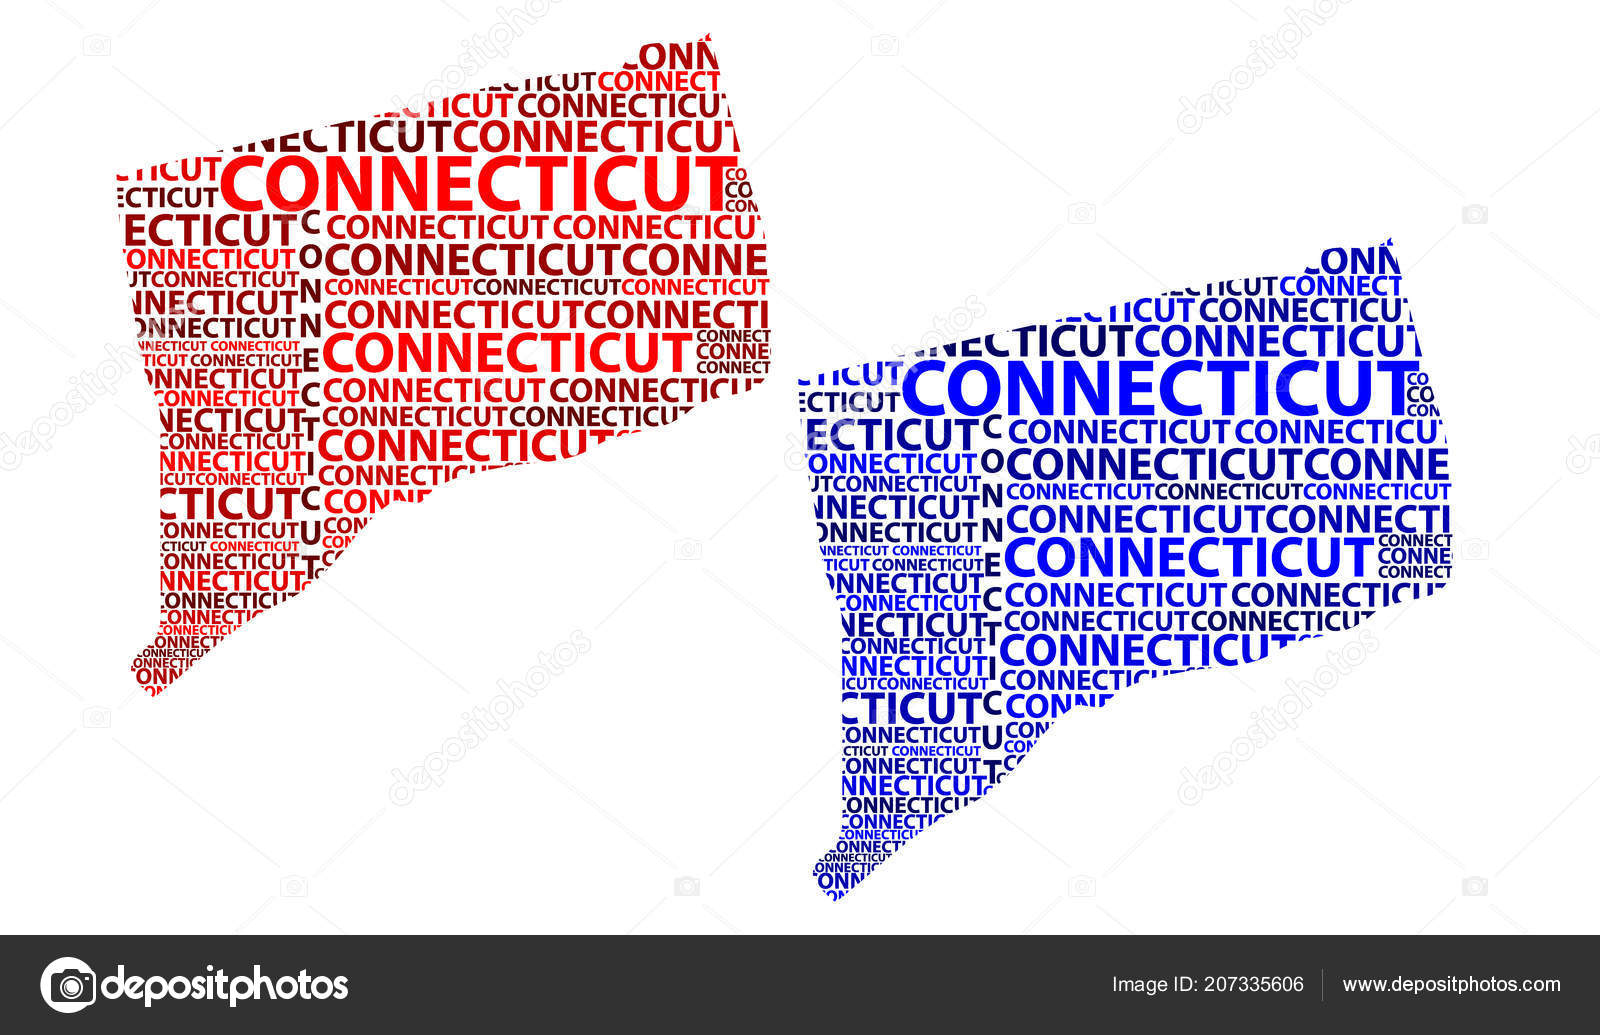 Sketch Connecticut United States America Constitution State Letter ...